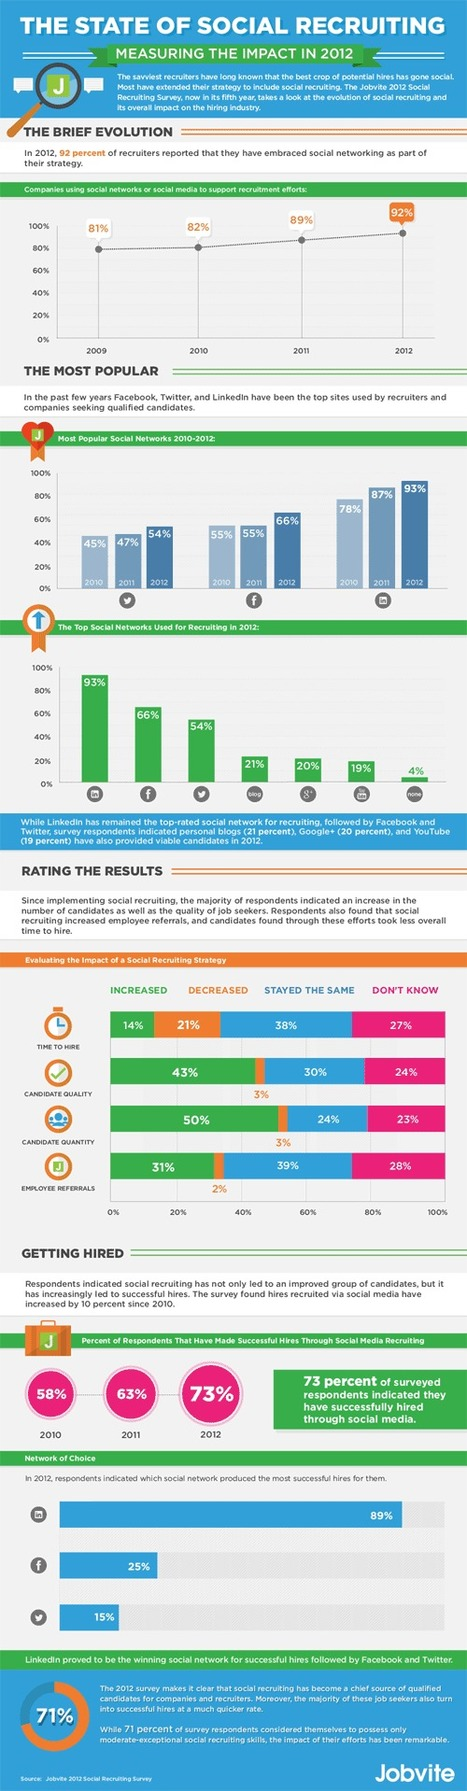 93% of recruiters use social media in 2012, Global Recruiting Roundtable | Employer Branding News | Scoop.it